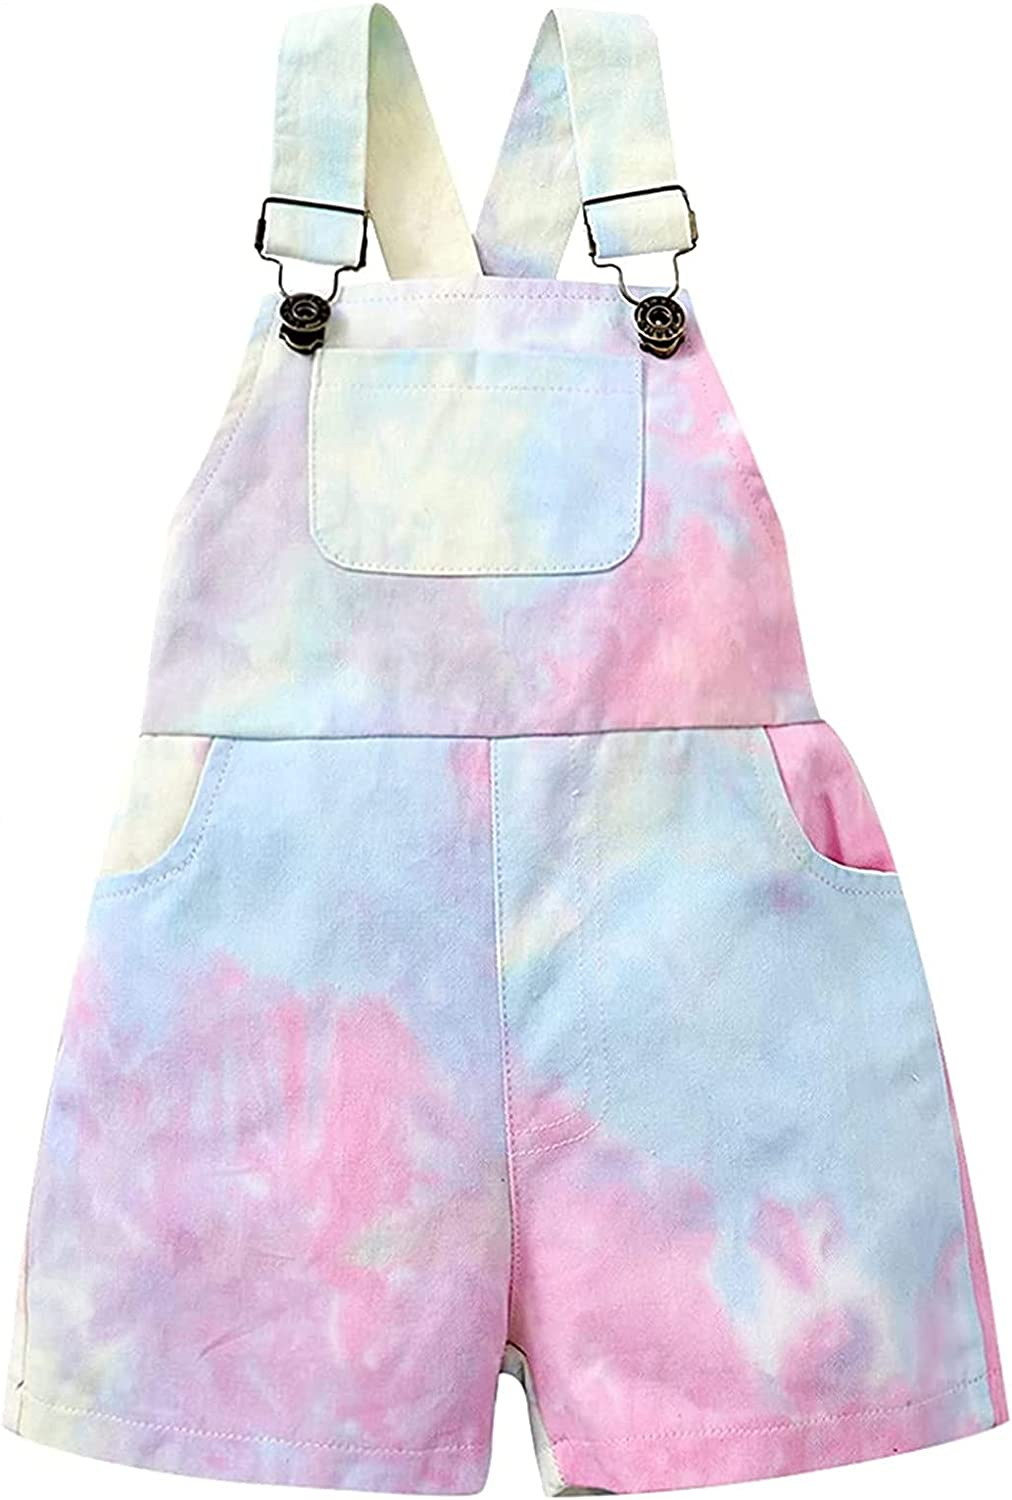 woshilaocai Toddler Baby In stock Girl Tie Clothes Kids Fashionable Sleeve Romper Dye